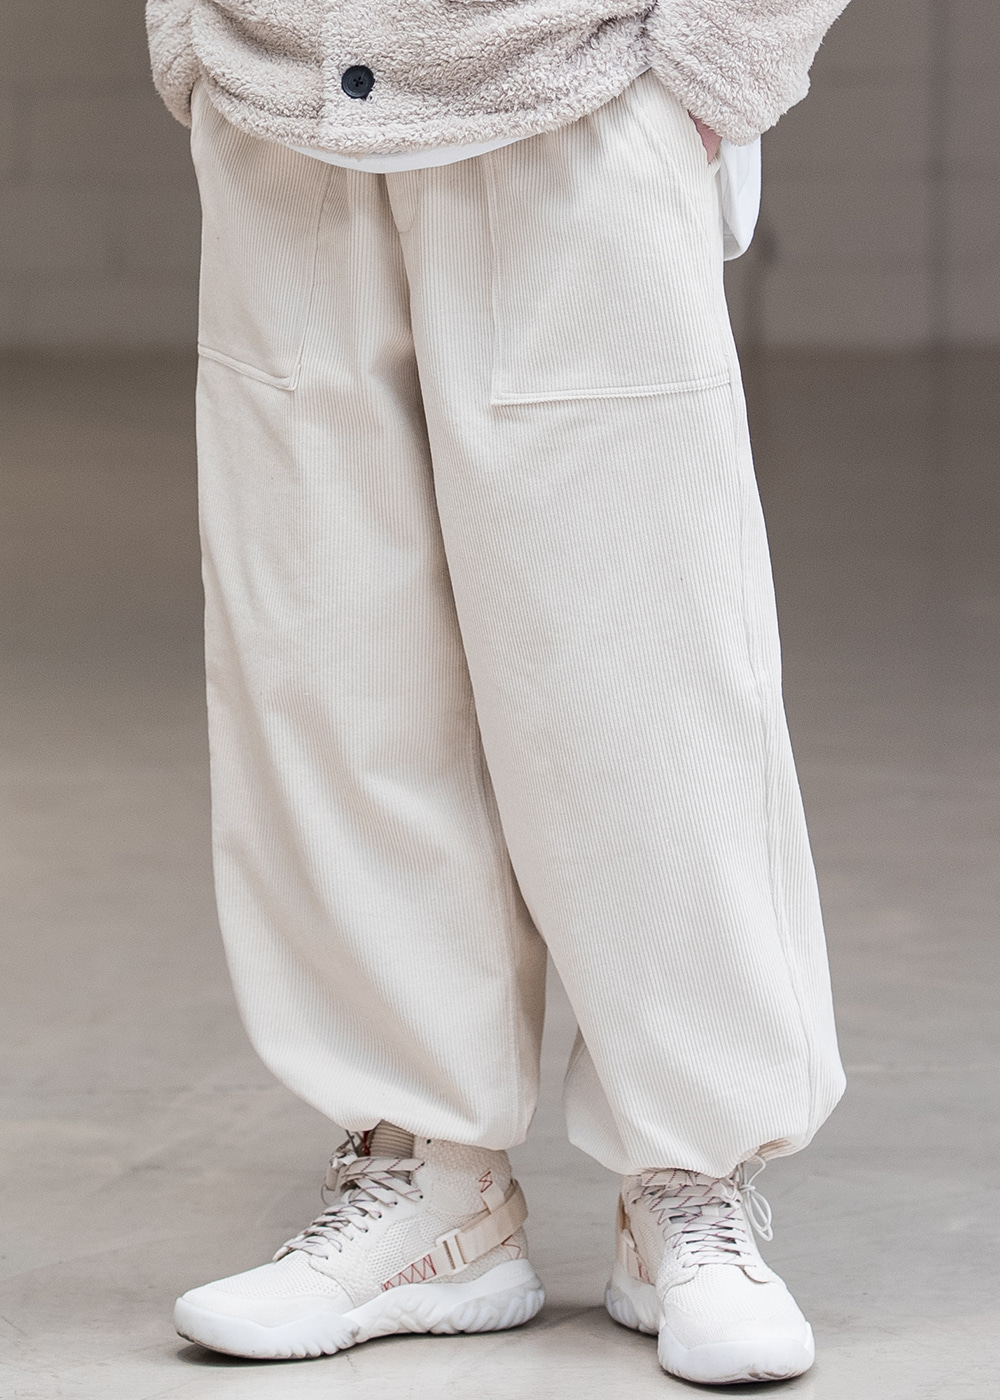 FATIGUE BALLOON JOGGER PANTS MFNCP007-IV